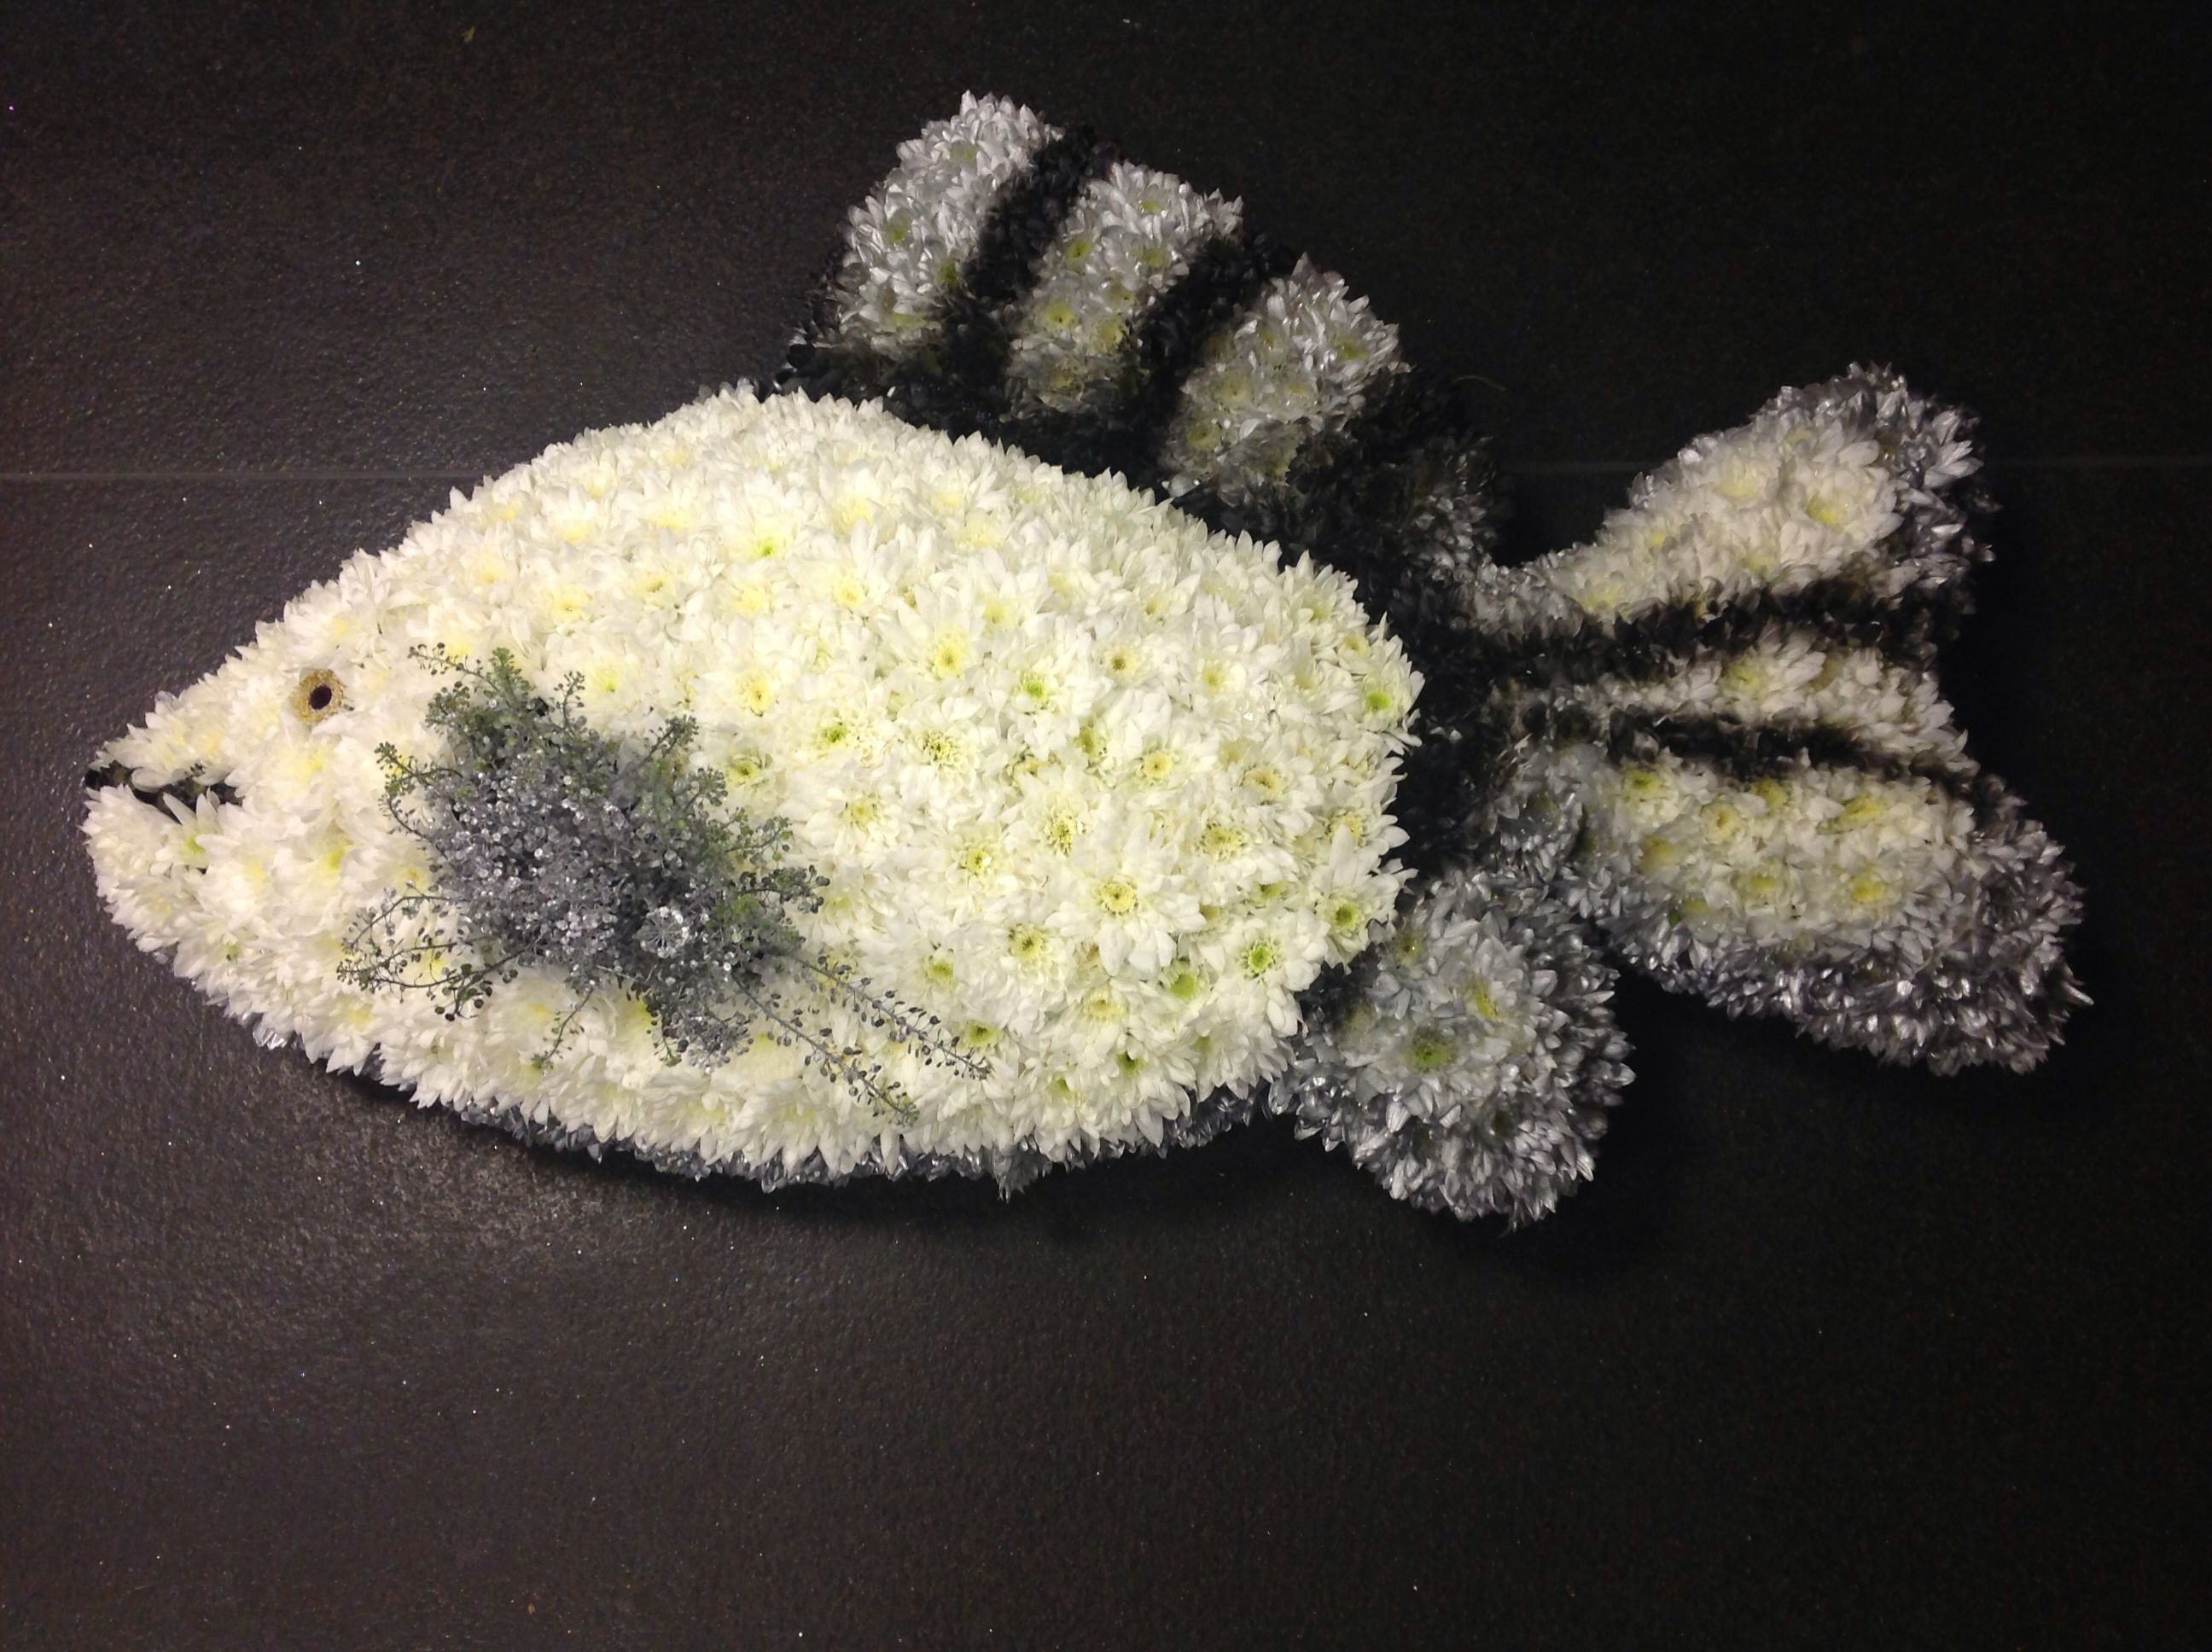 Fish made by tayler james flowers funeral ideas pinterest fish fish made by tayler james flowers izmirmasajfo Gallery